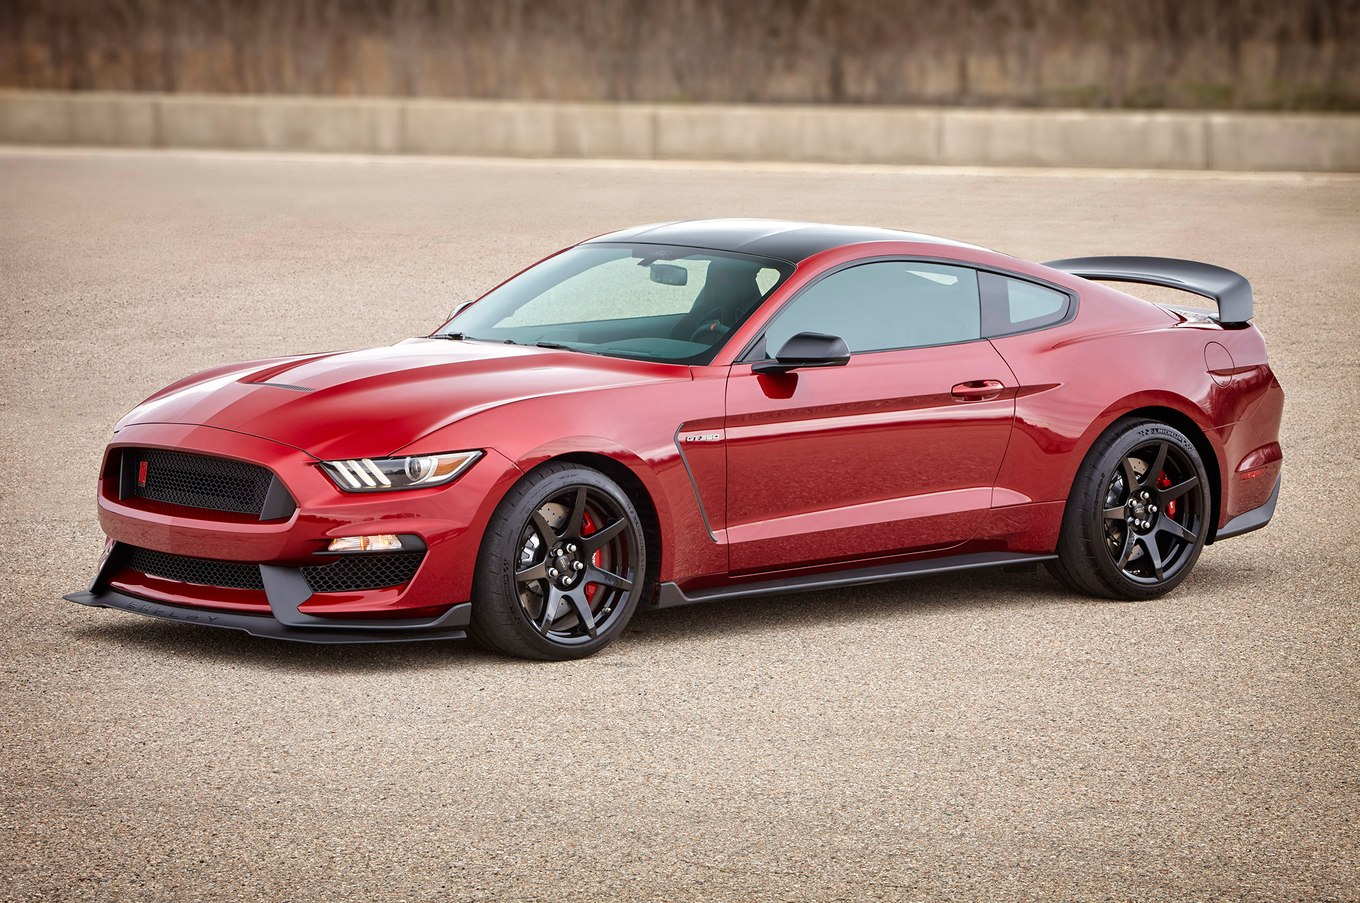 Shelby gt350 photo - 1